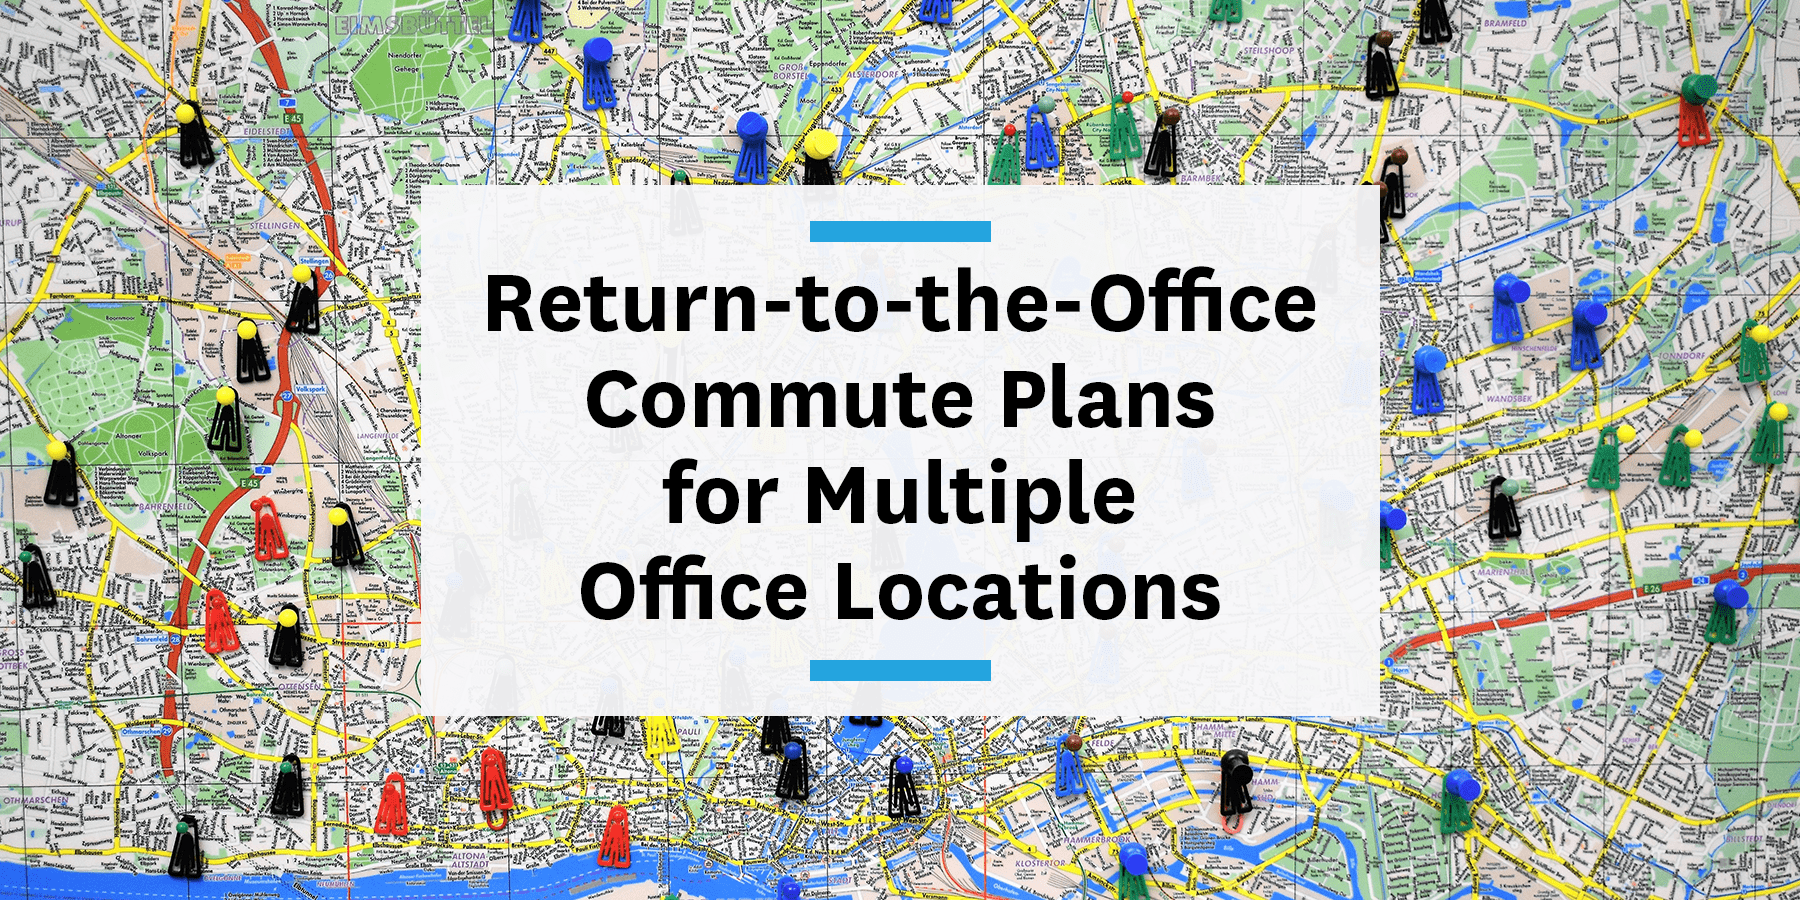 Feature image for return-to-the-office commute management plans for multiple office locations